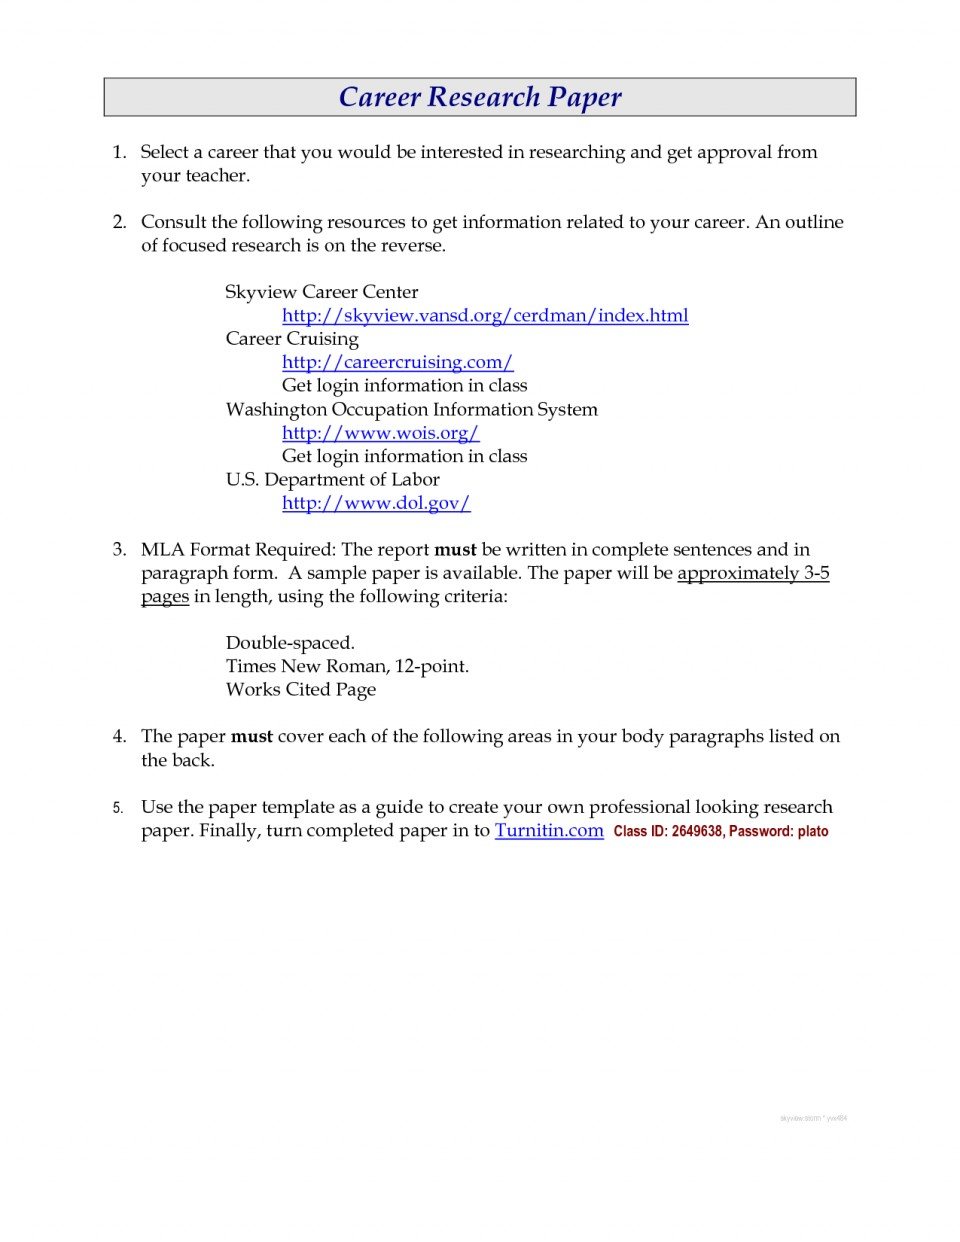 010 Research Paper Career Outline 477648 Unusual Template 960